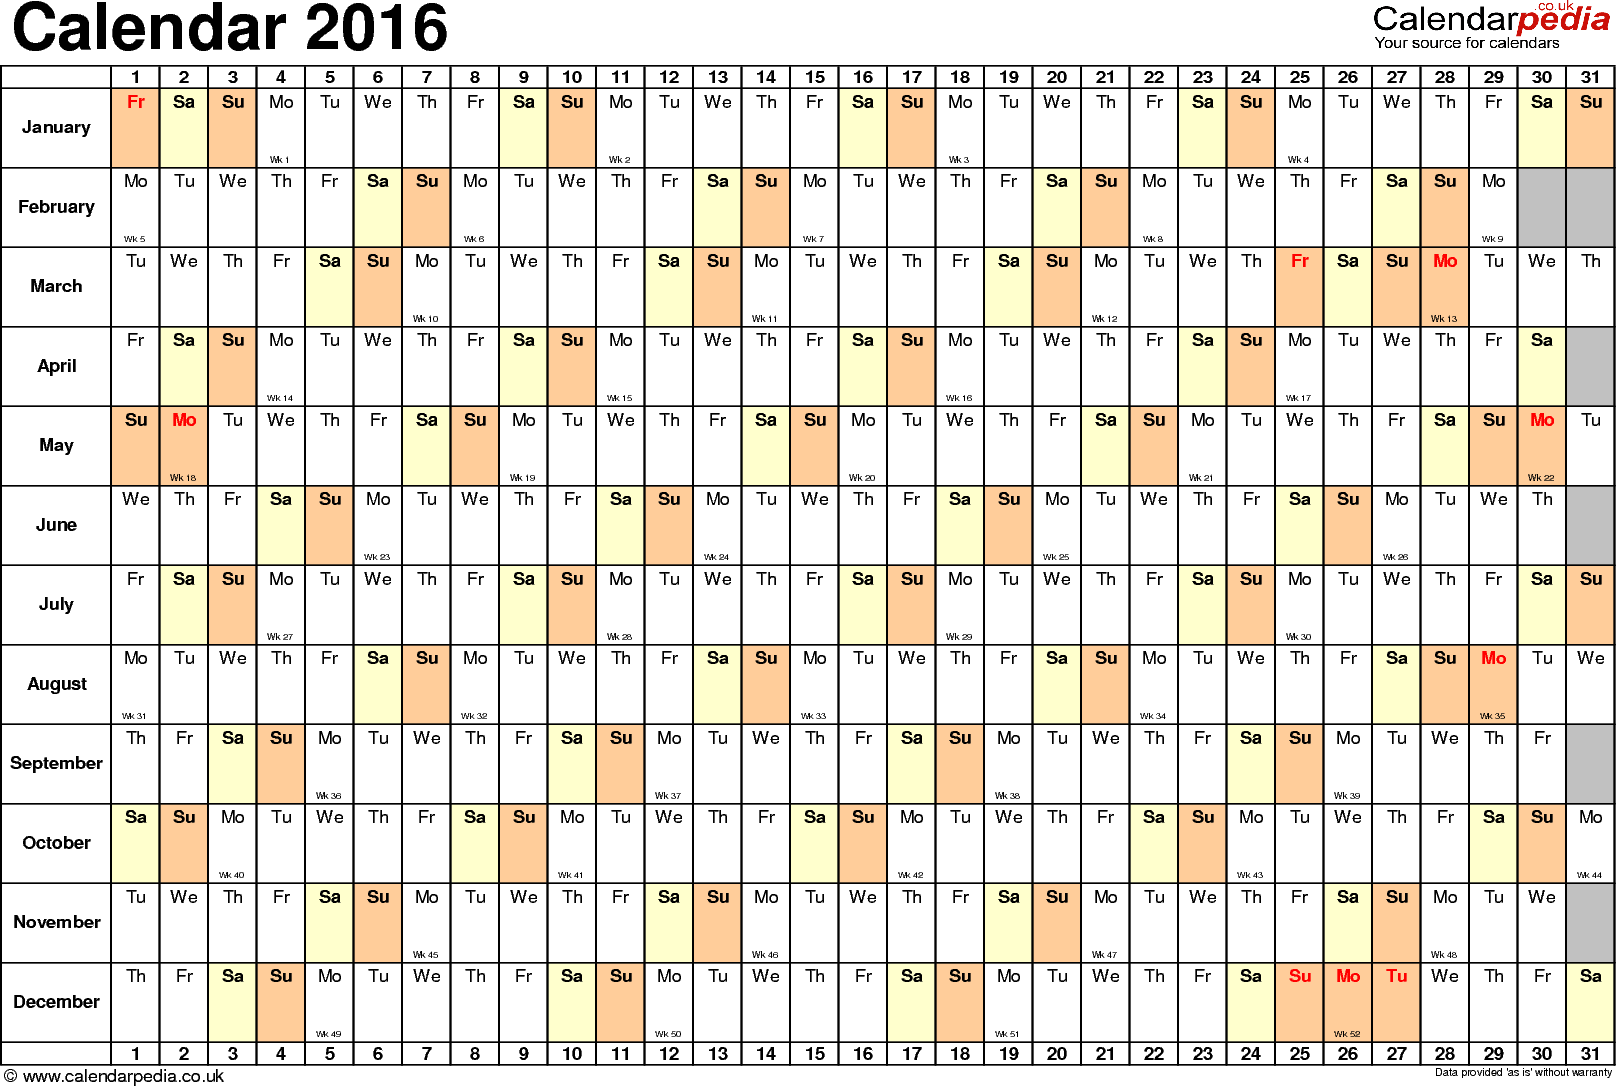 Template 6: Yearly calendar 2016 as Excel template, landscape orientation, 1 page, linear (days horizontally, months vertically), with UK bank holidays and week numbers